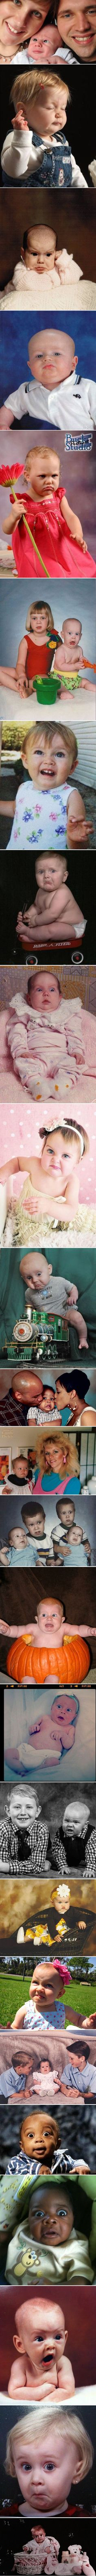 Funny kids and baby photographs taken at the perfectly wrong time. I can't stop laughing!